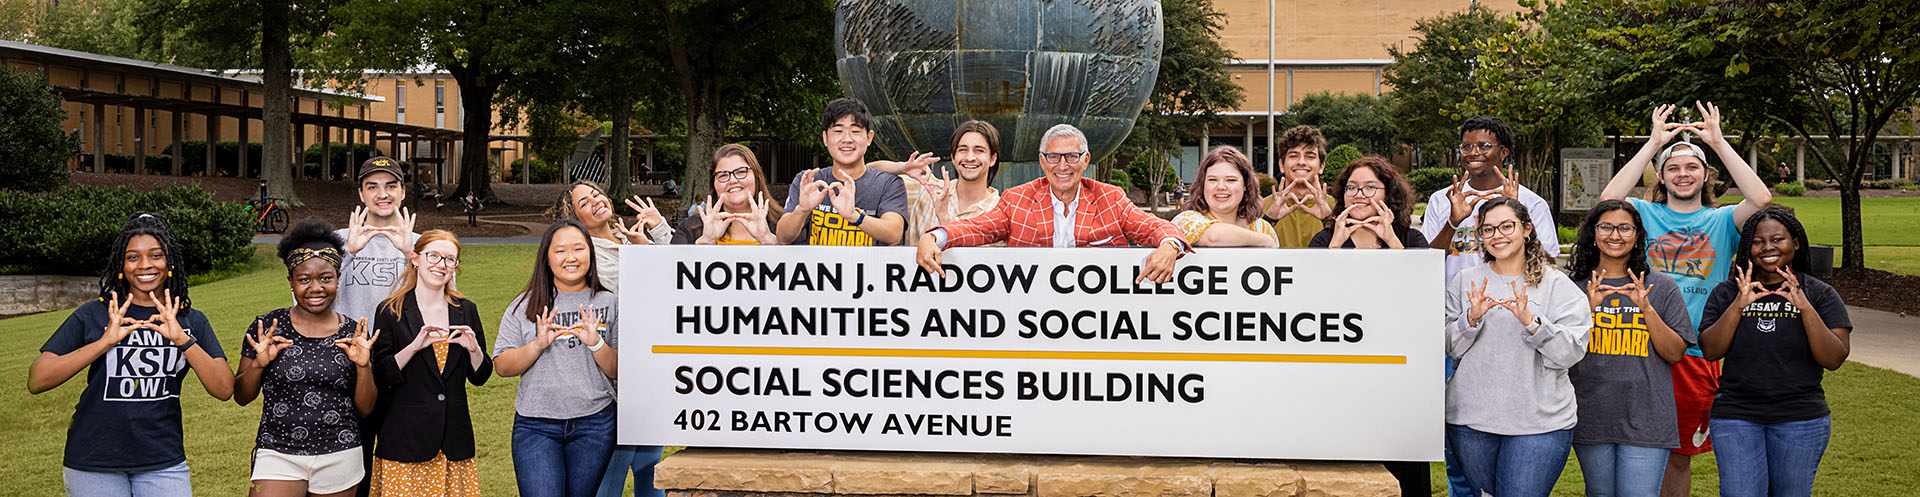 KSU celebrates naming of the Norman J. Radow College of Humanities and Social Sciences